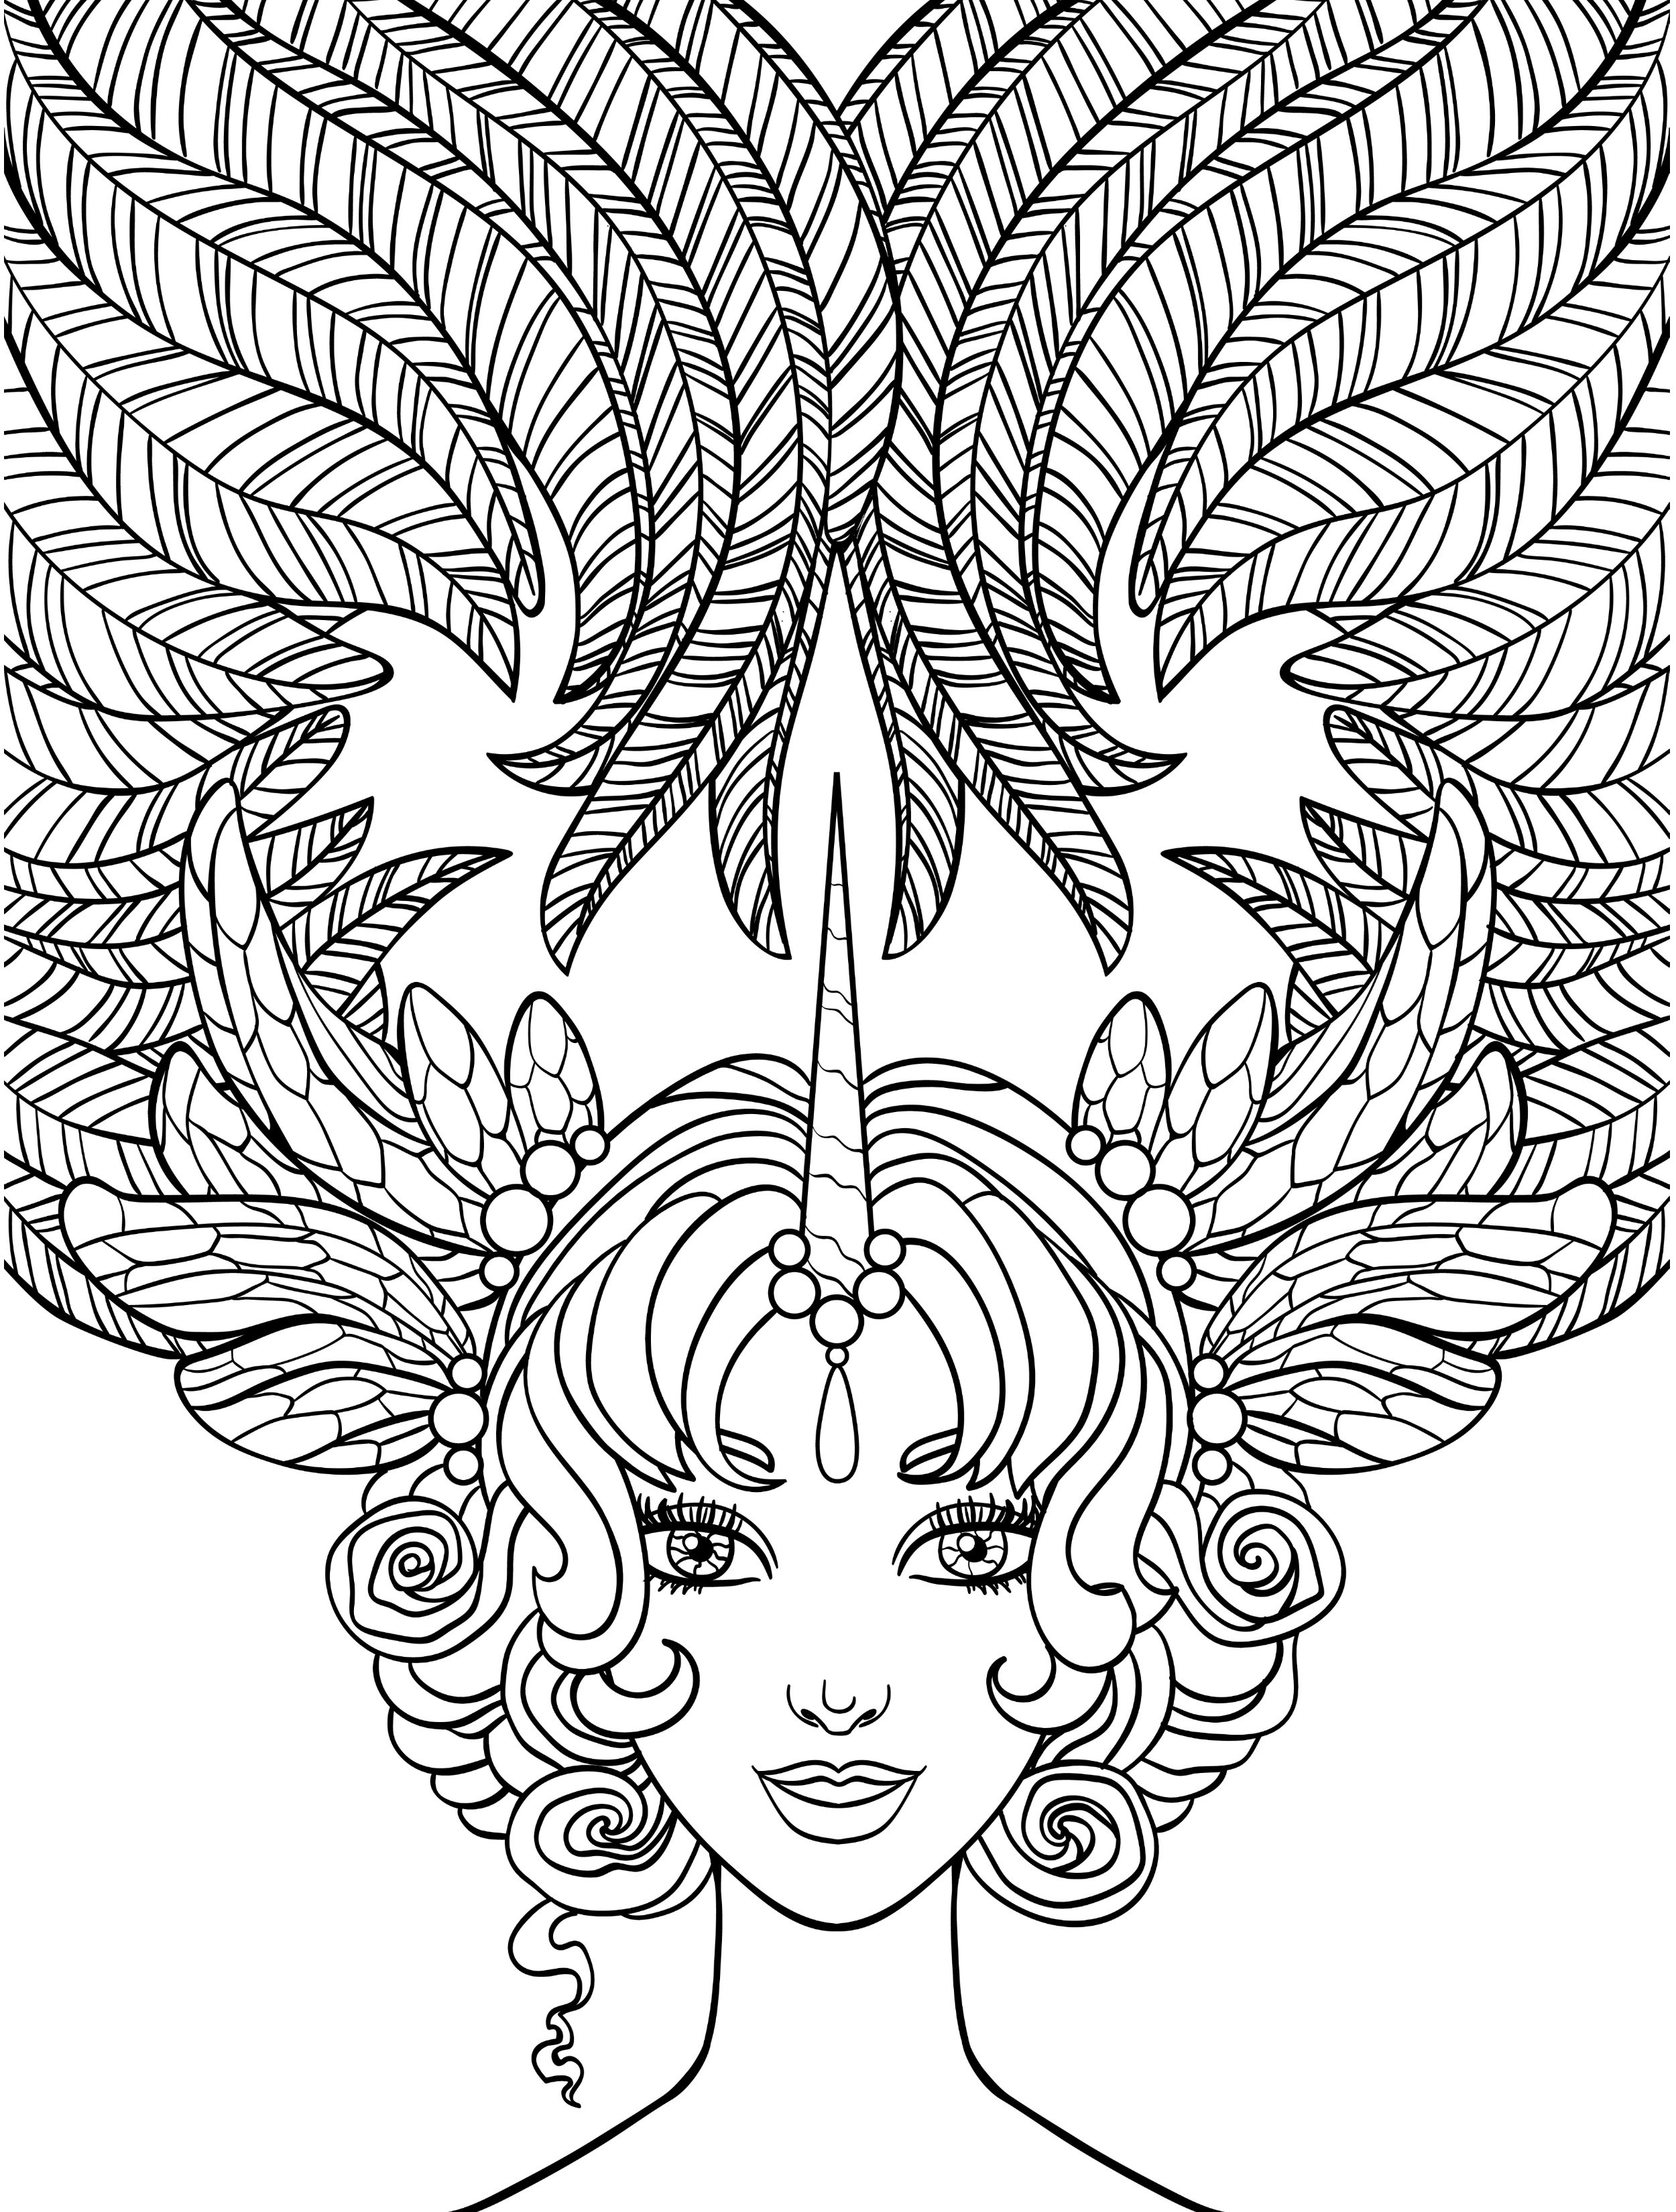 vampire coloring pages vampire diares coloring pages coloring pages to download pages vampire coloring